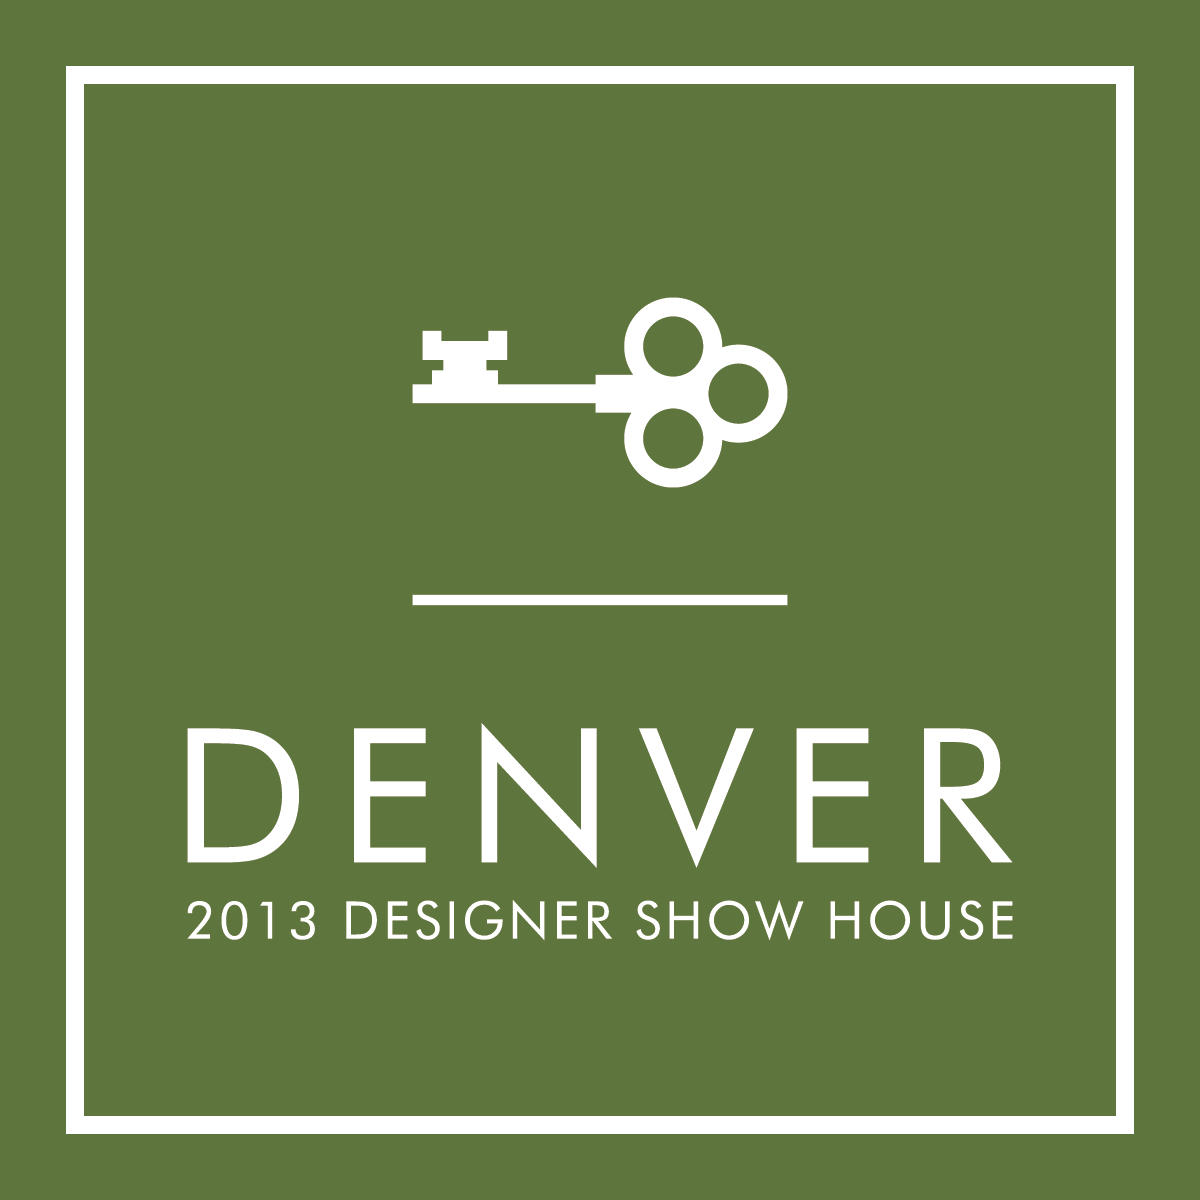 2013 Denver Designer Show House